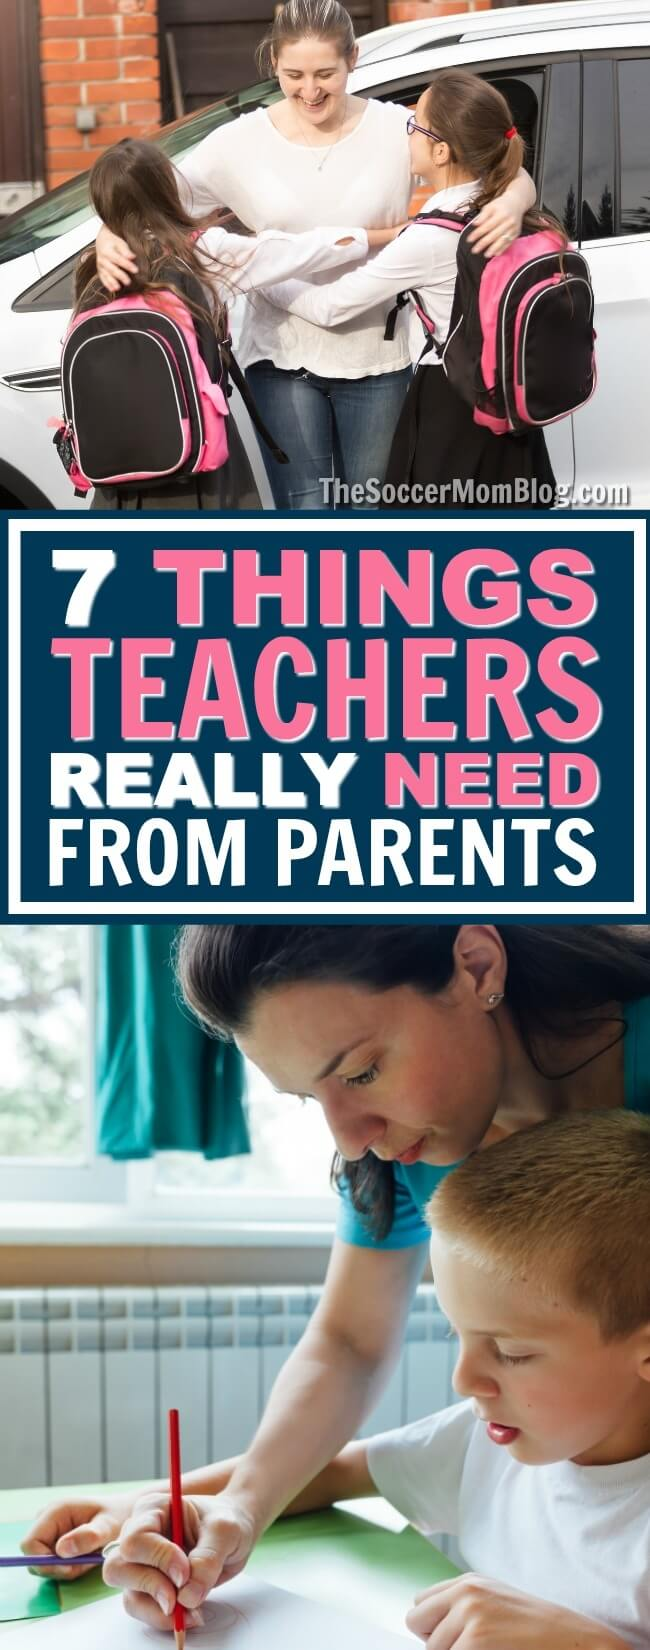 The average educator spends $500 of their own money every year. 7 things teachers need (in their own words) from parents to make the school year a success.